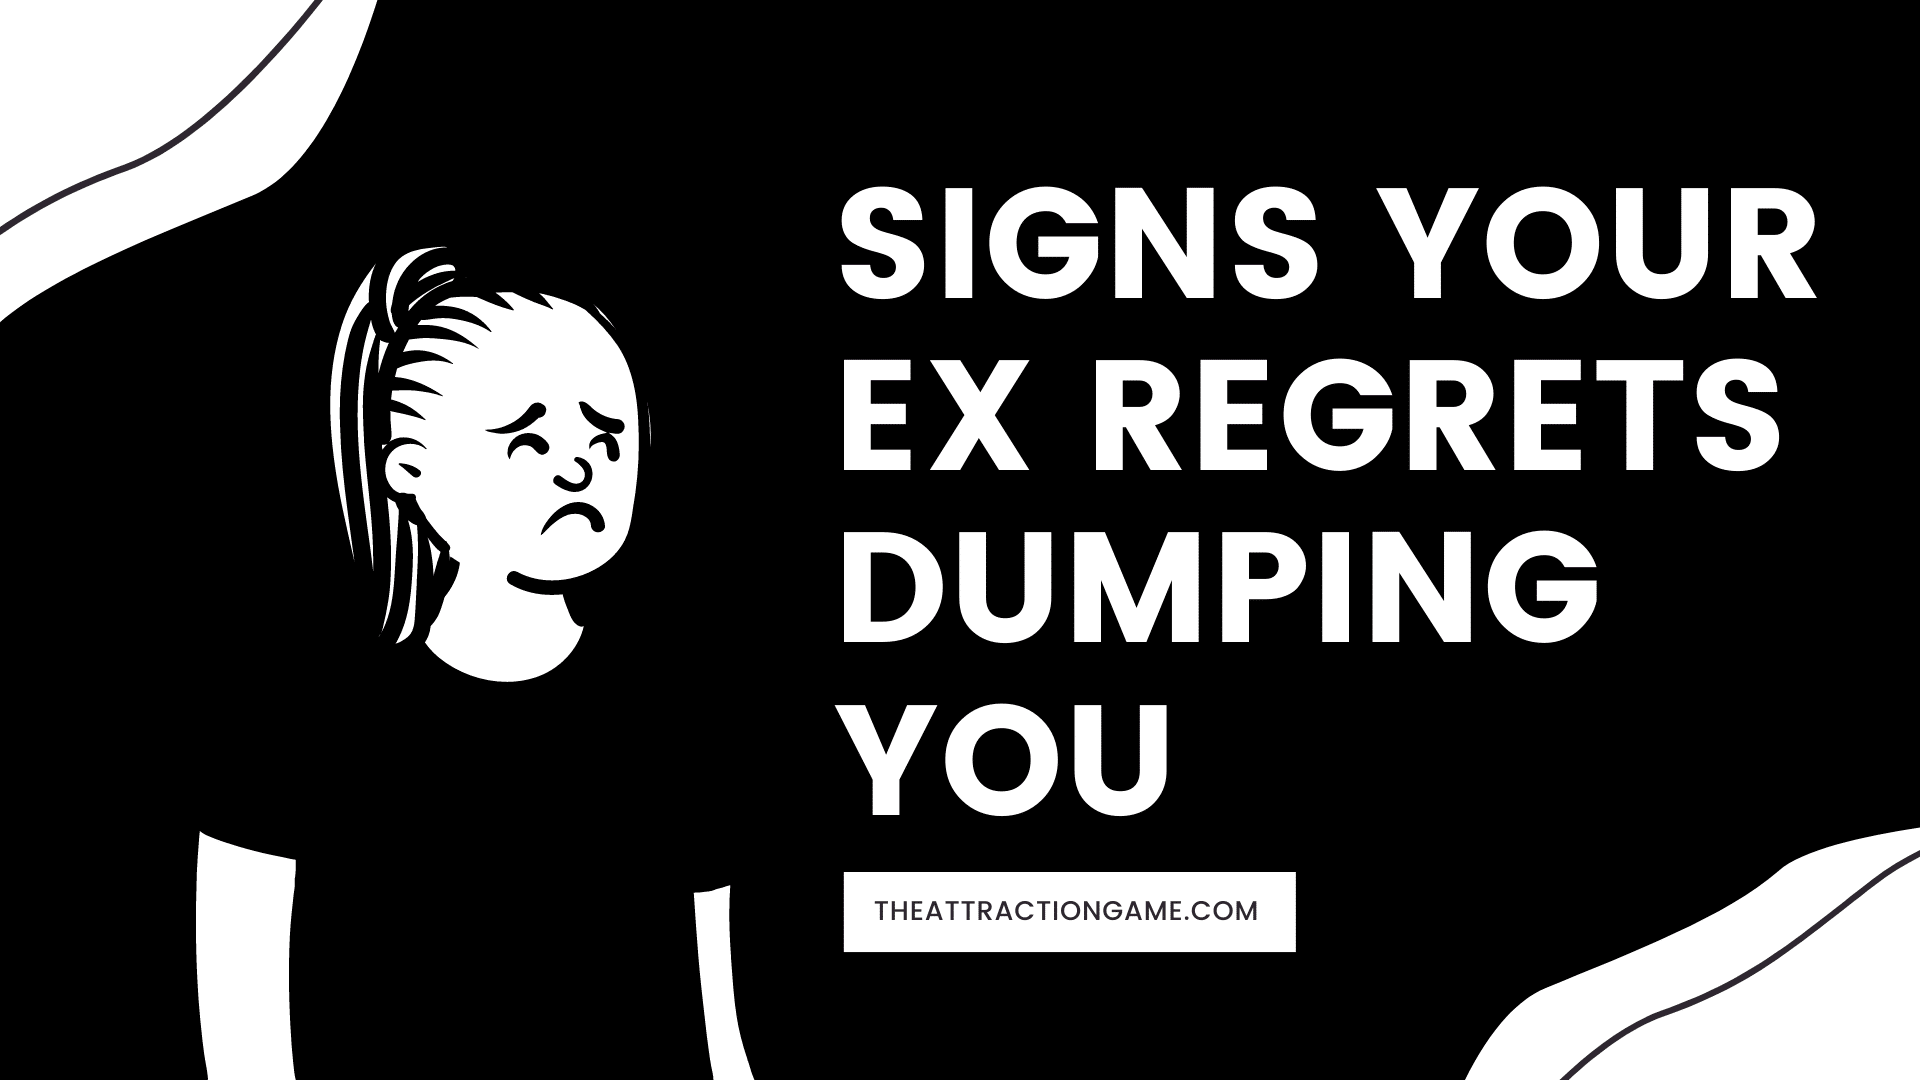 signs your ex regrets dumping you, your ex regrets dumping you, what are the signs your ex regrets dumping you, signs your ex regrets breaking up with you